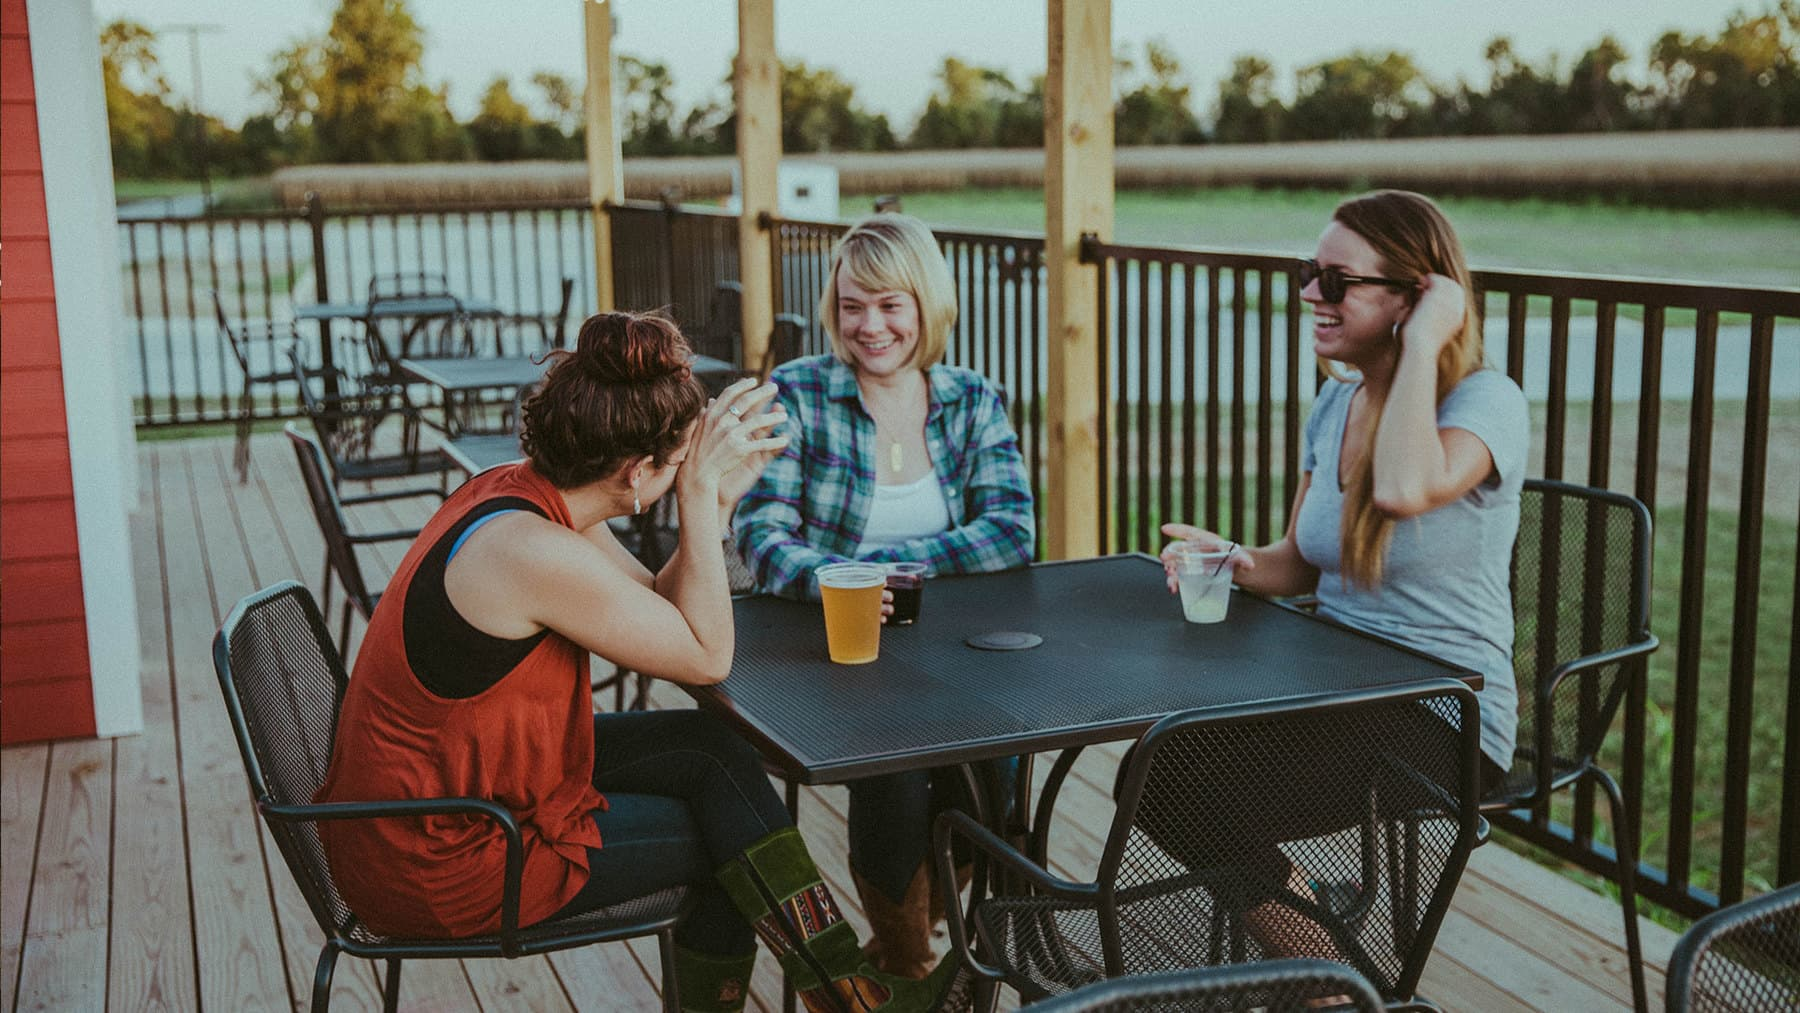 Your go-to stop on the Katy Trail for fun and relaxation.